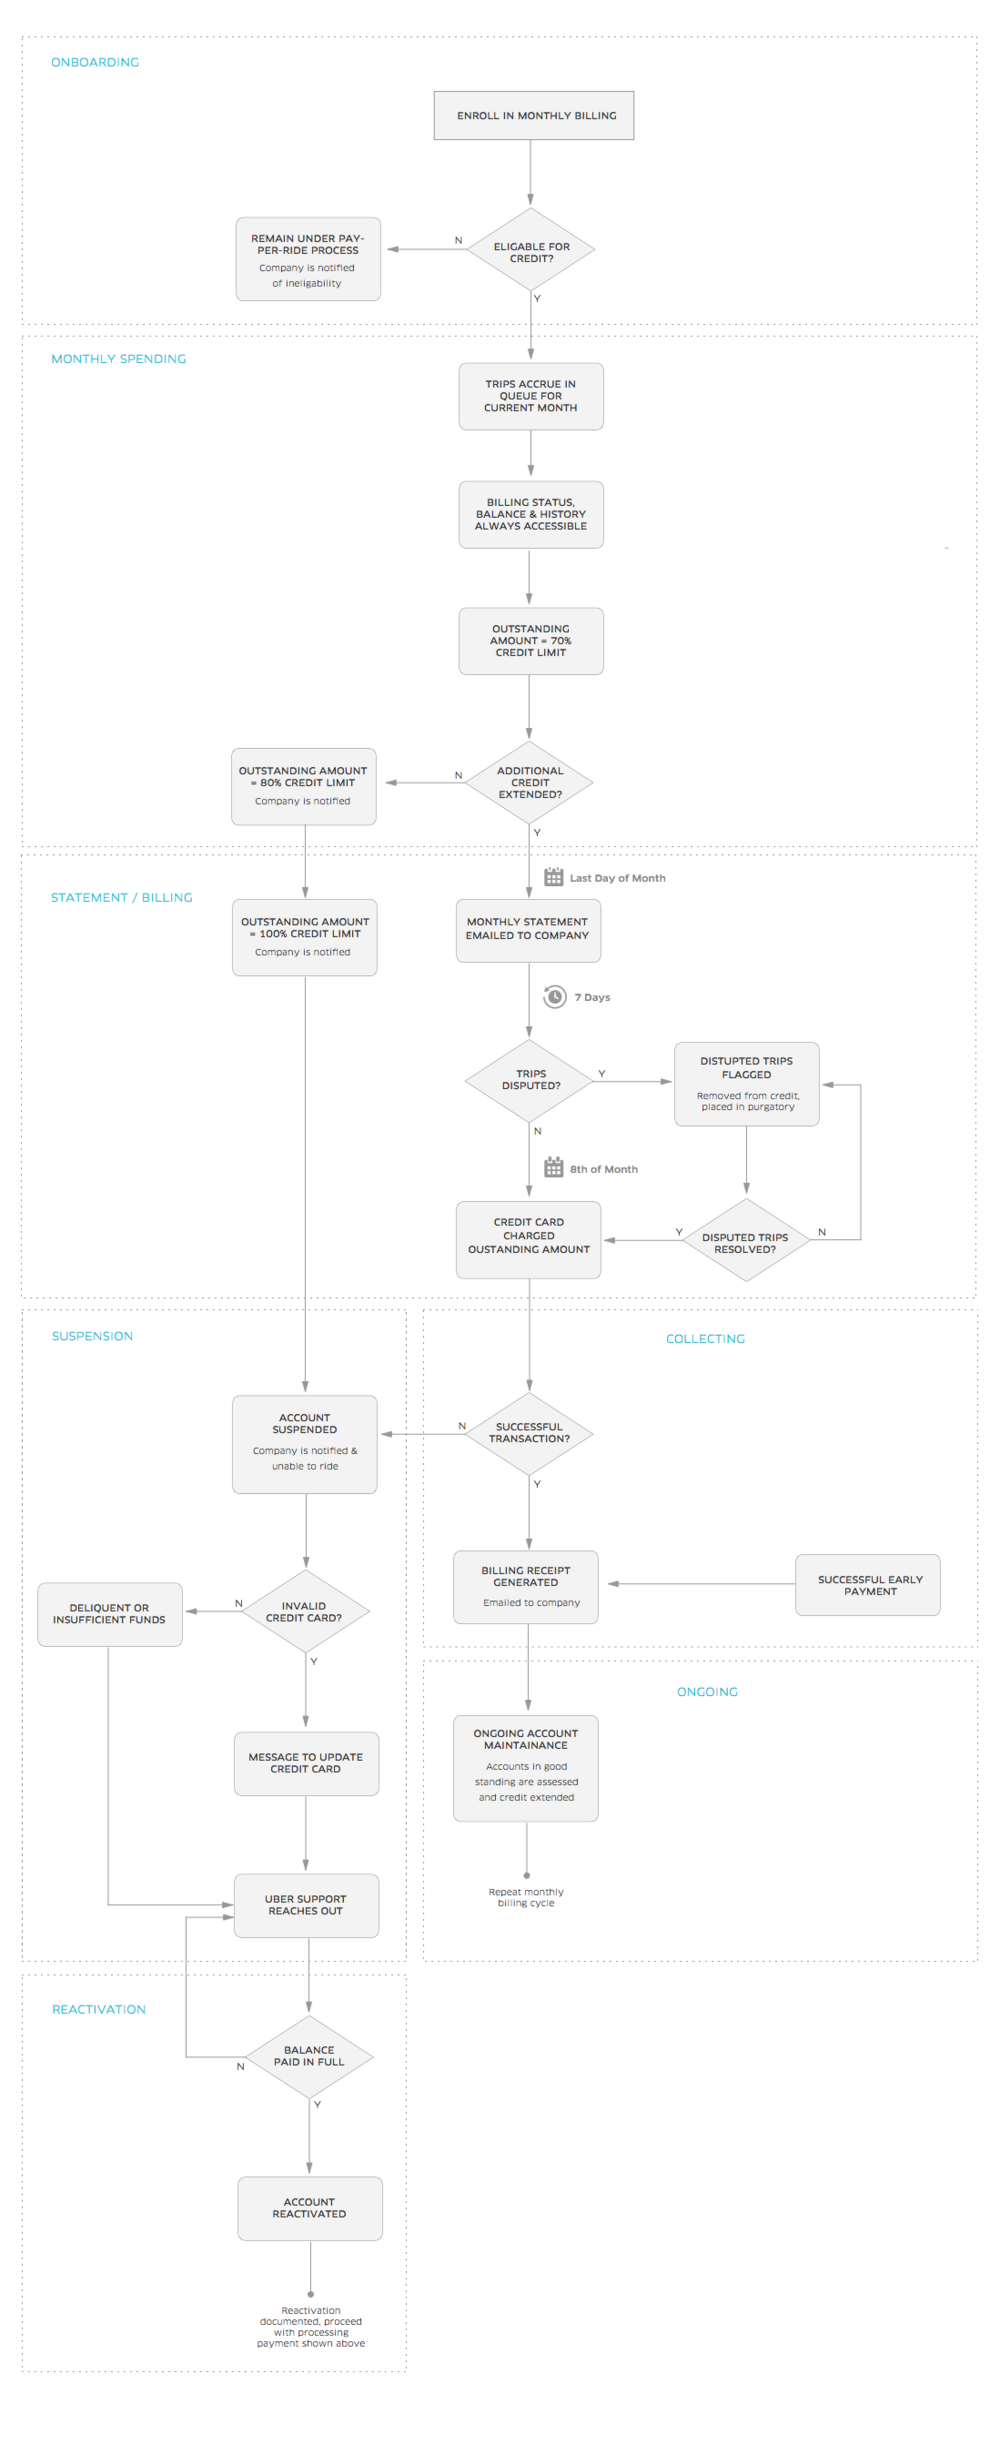 Monthly Billing Flow Chart